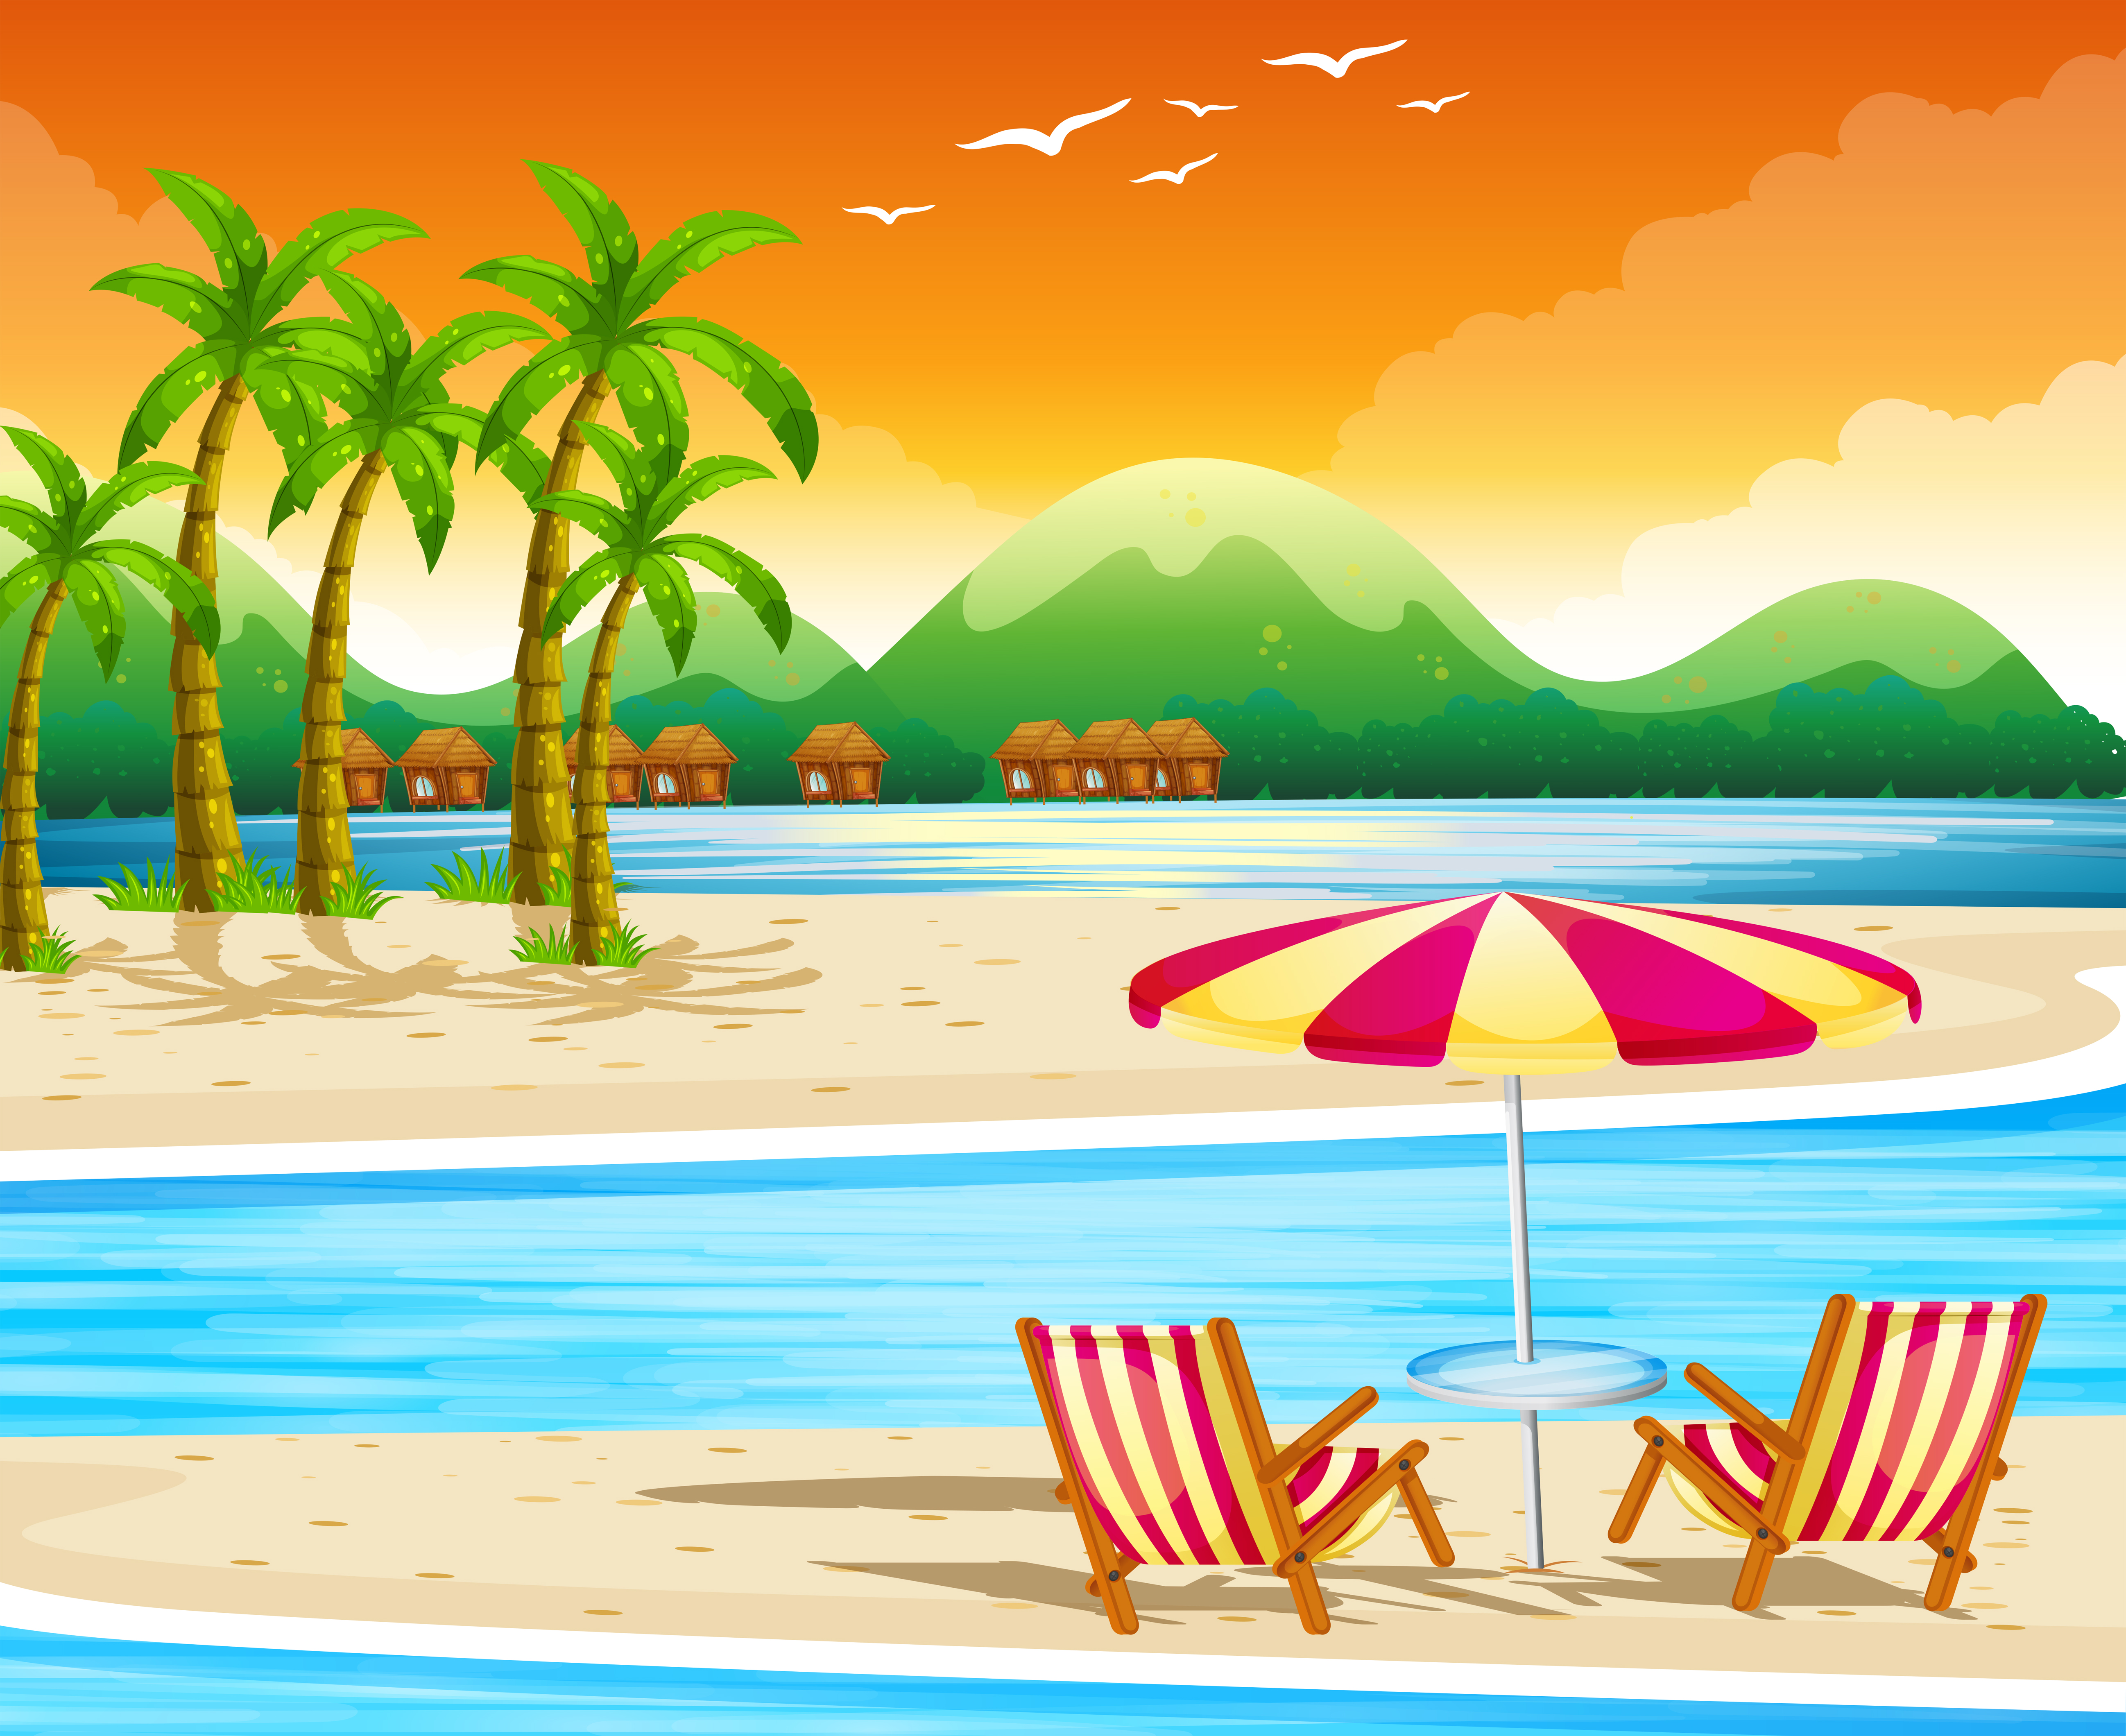 Beach scene with chairs and umbrella - Download Free ...